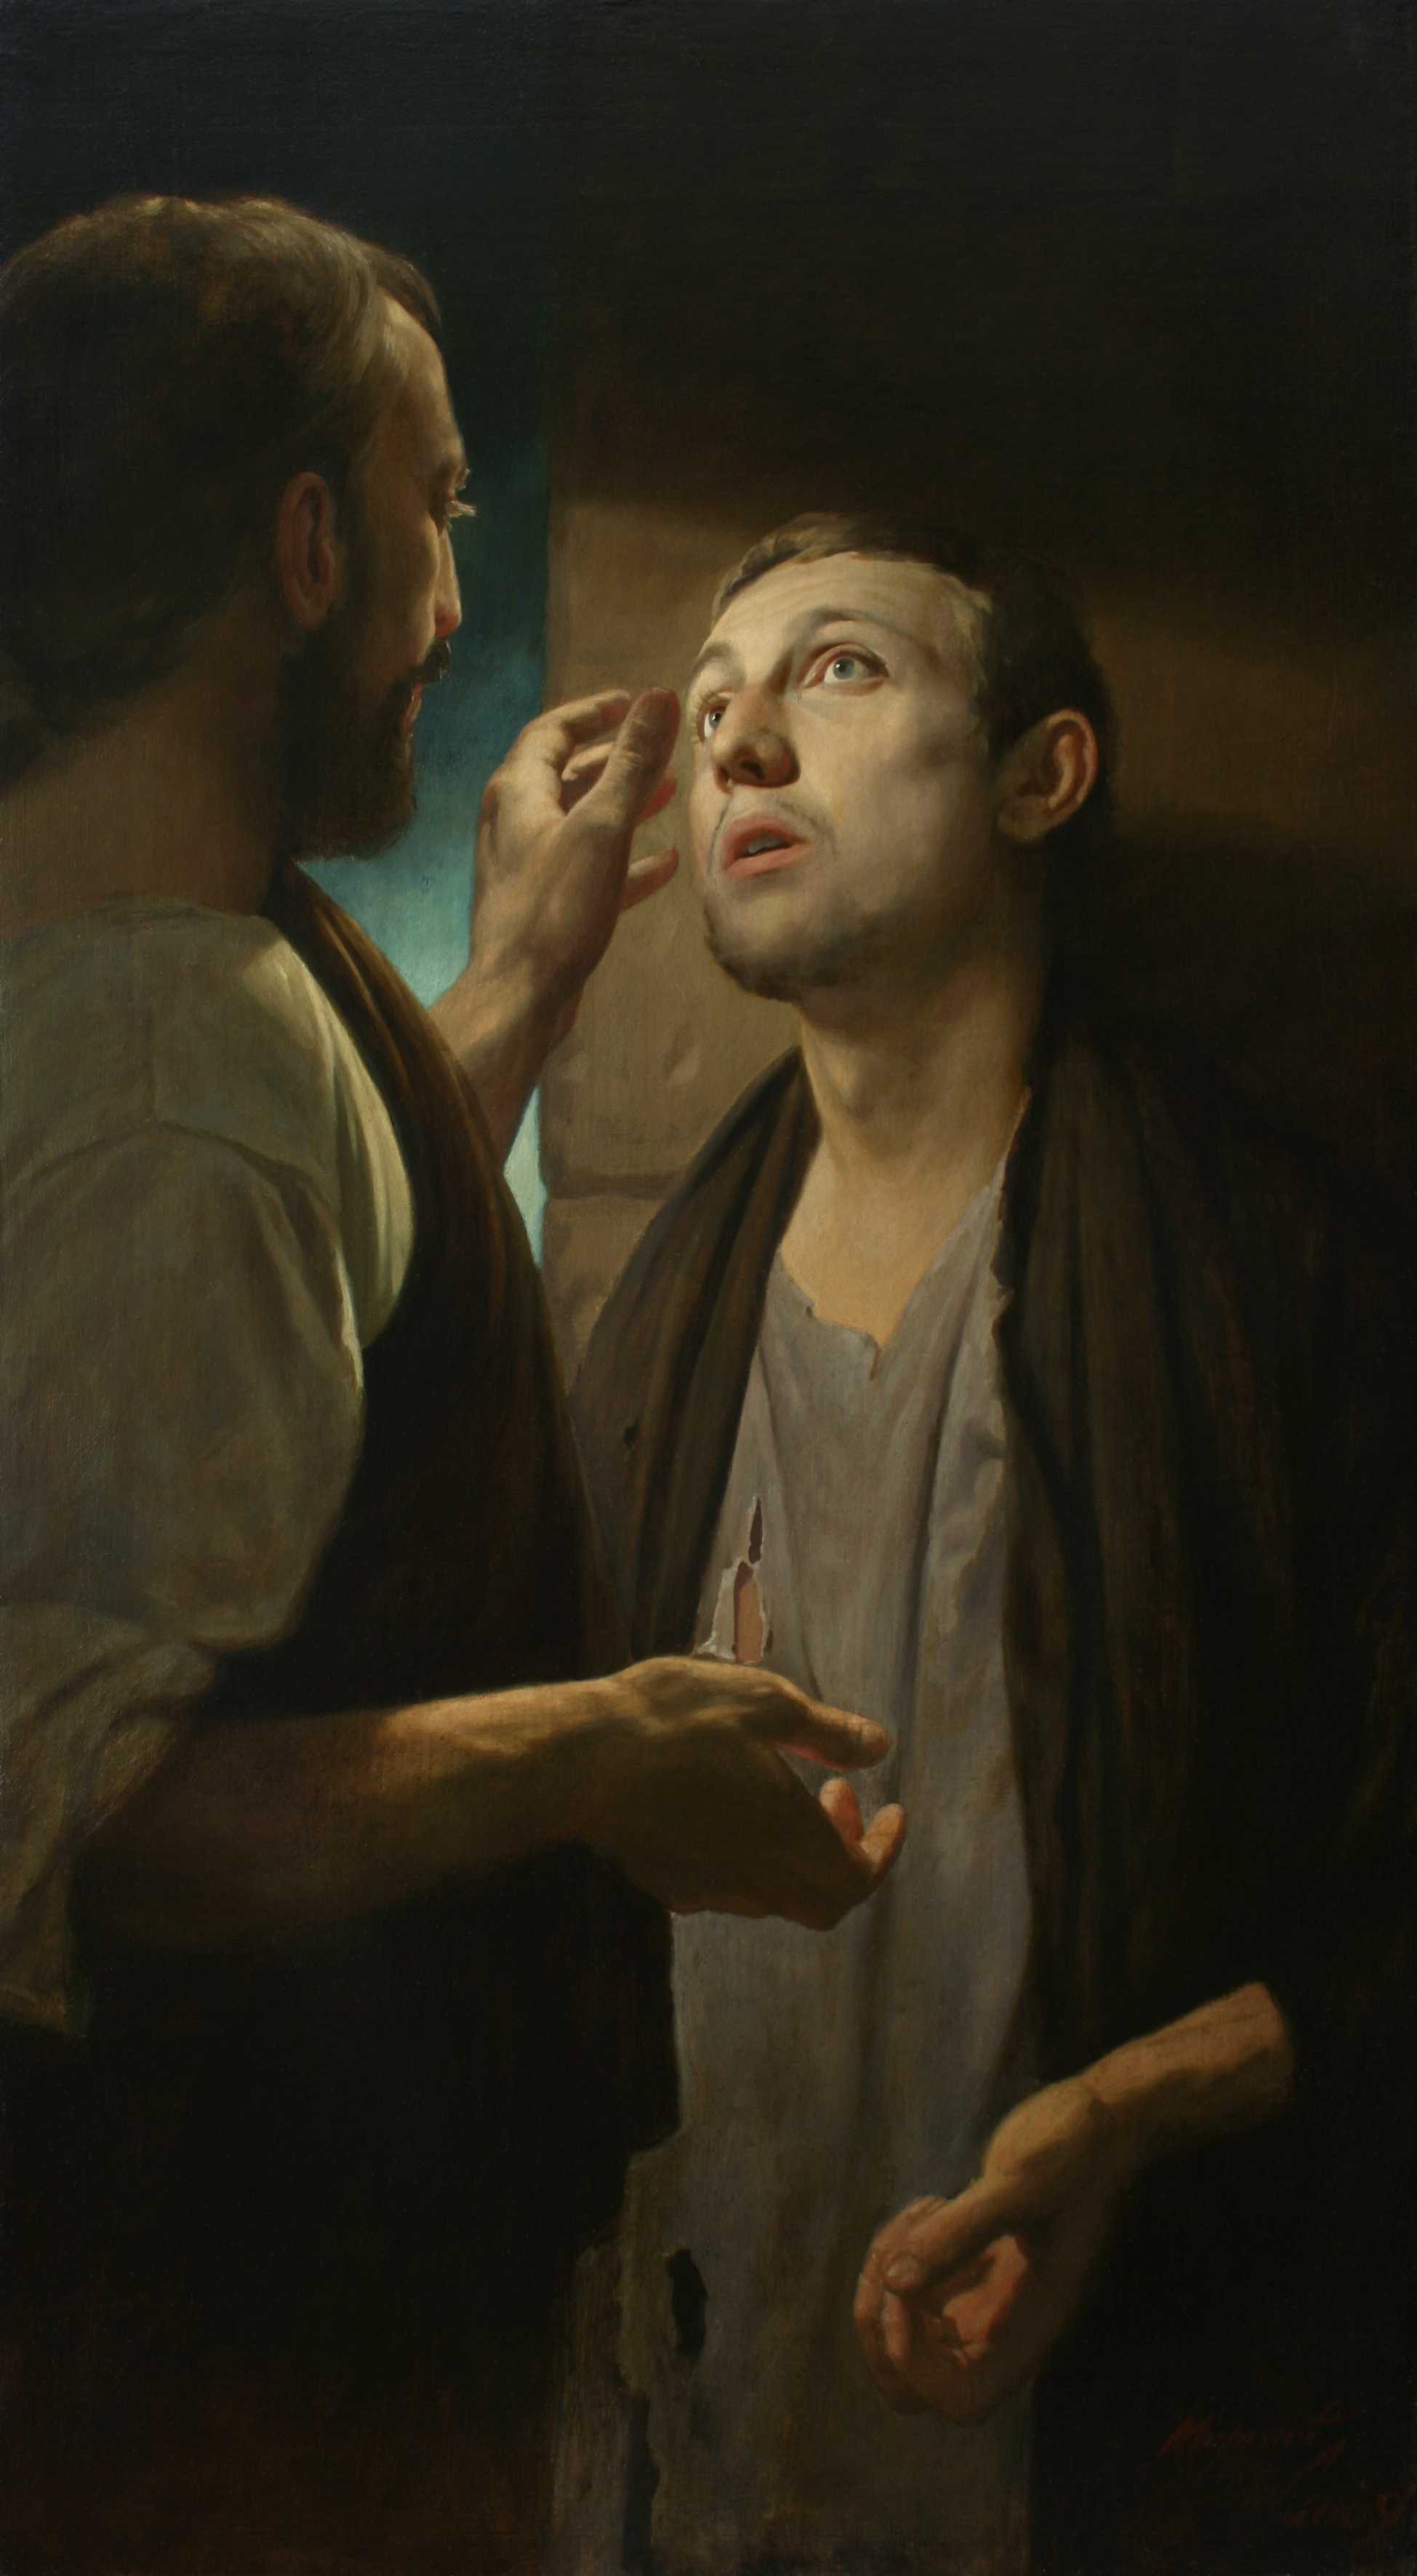 Christ and the pauper. Healing of the blind man. 2009. Canvas, oil. 100 x 55. Artist A.N. Mironov.